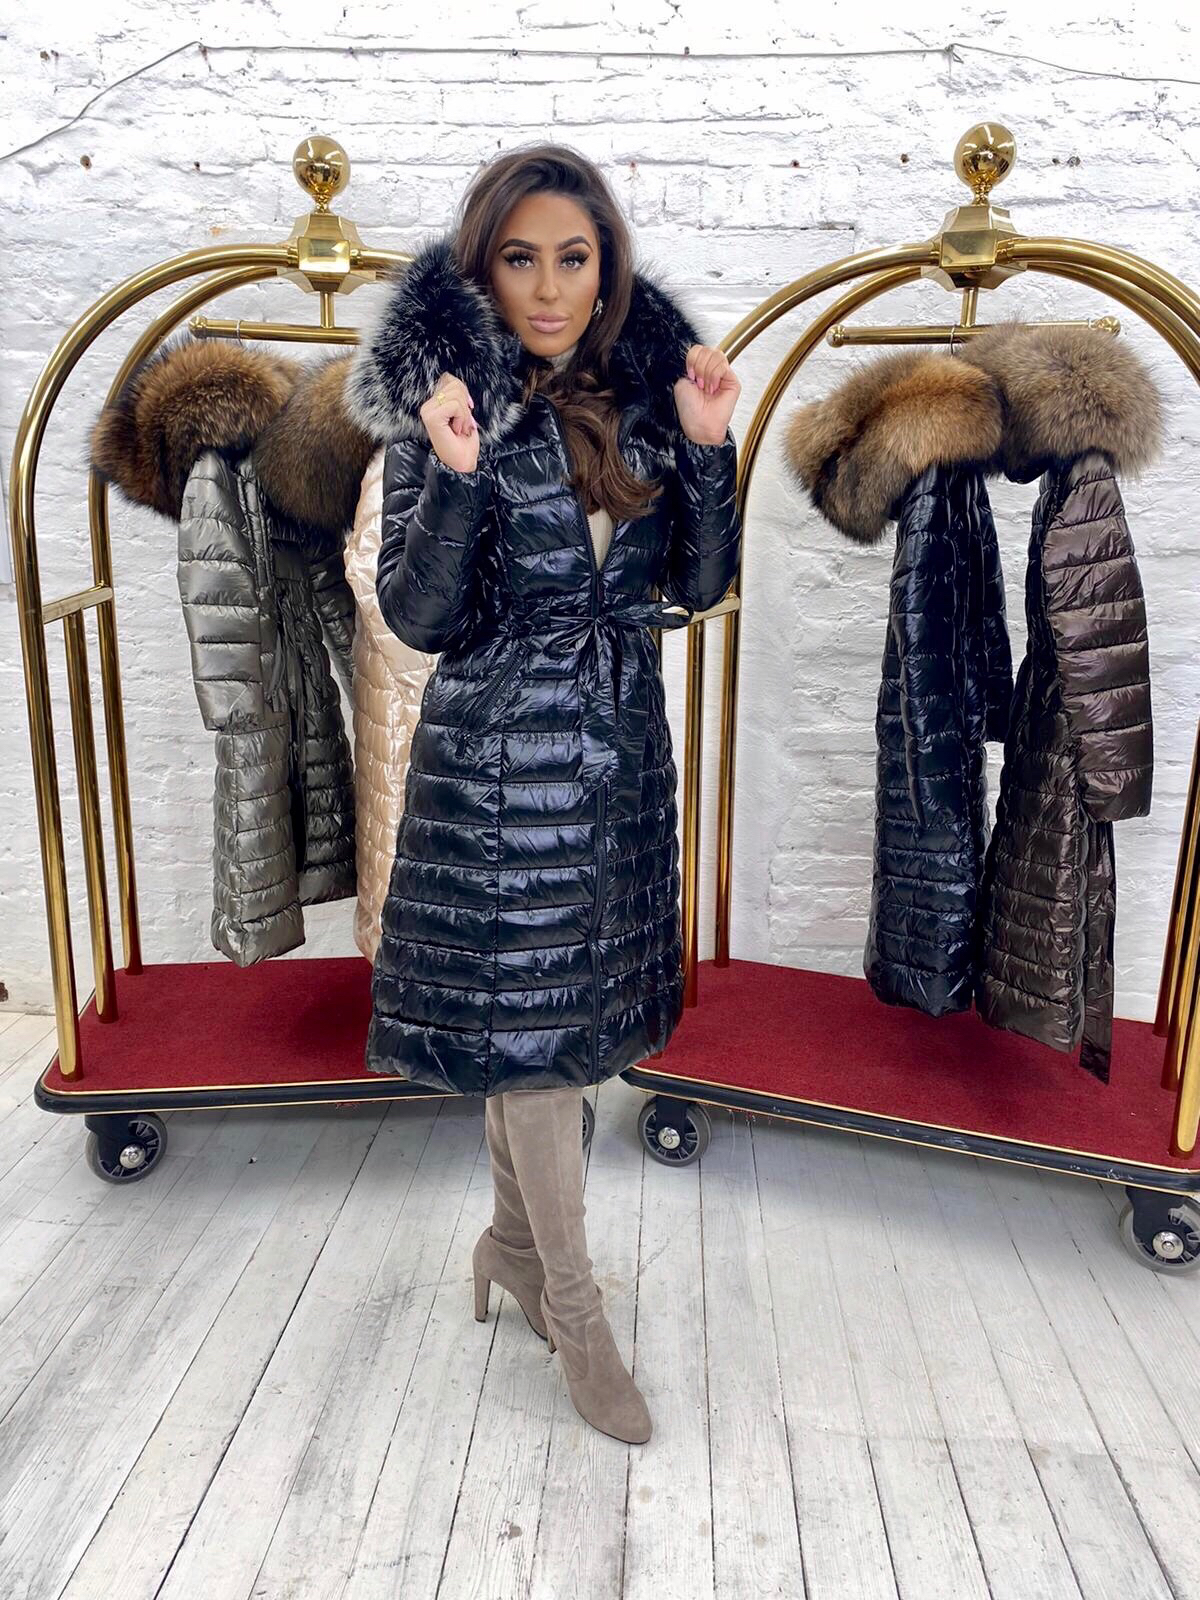 Limited Edition Laura Jane Paris 'Val Thorens' Luxury long Coat black with silver fox